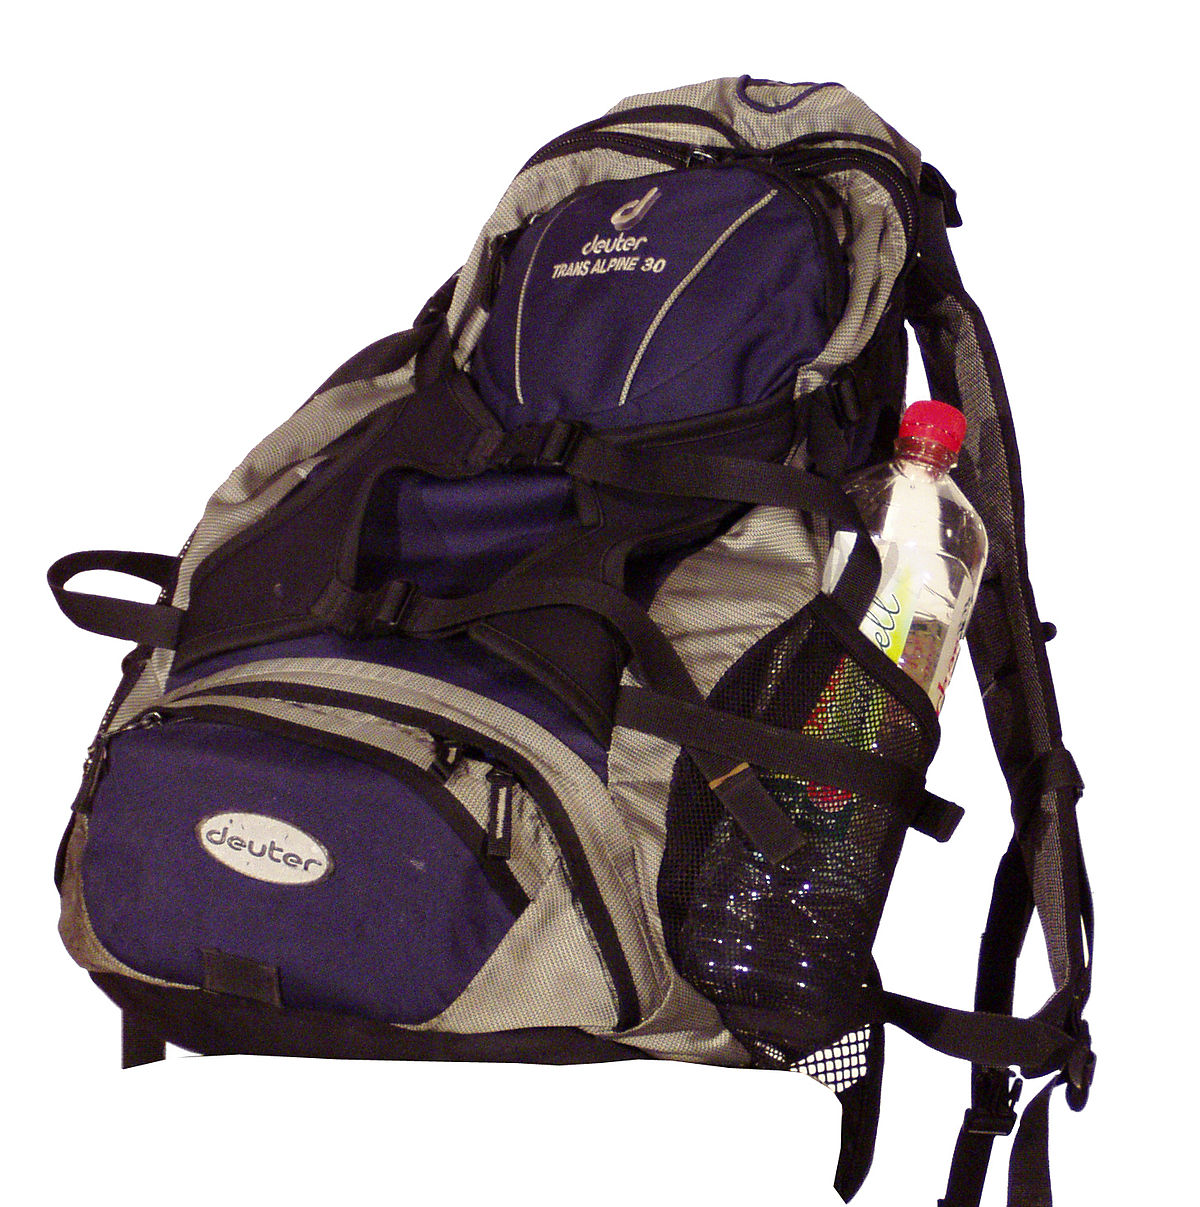 Backpack - Wikipedia 408577963d0ad